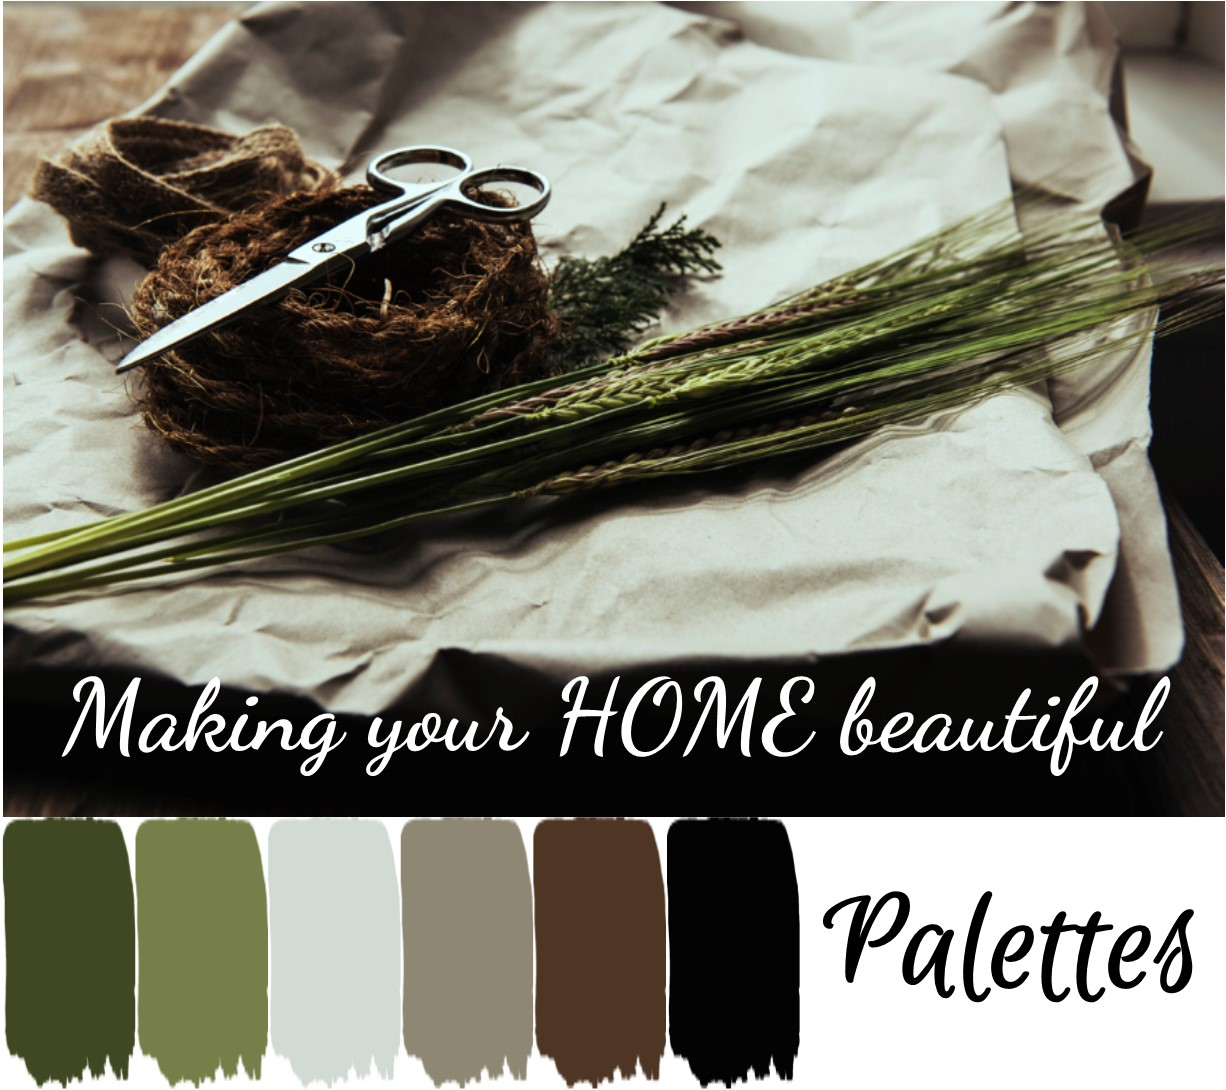 Let me show you how to use a Natural colour palette - Making